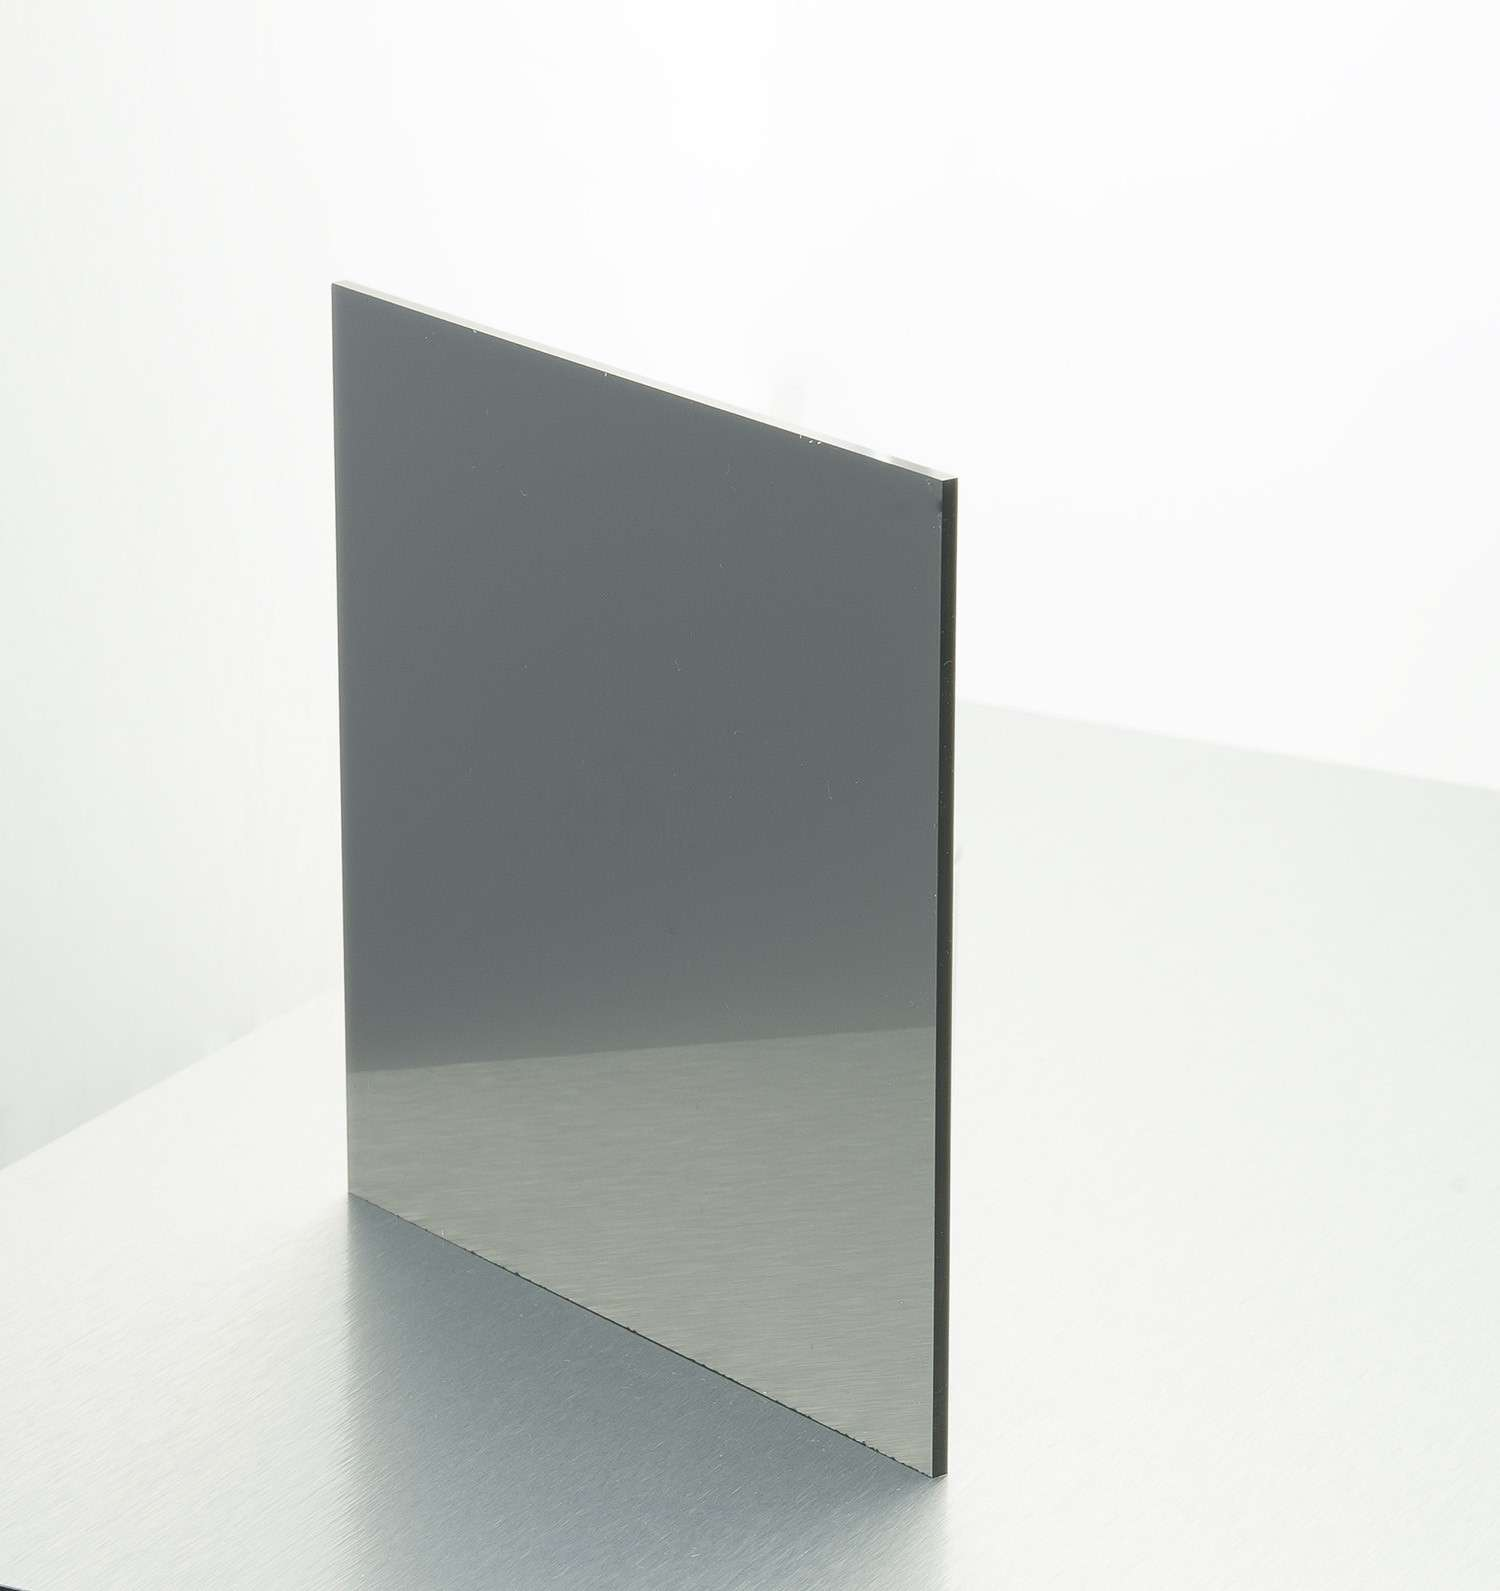 Silver Acrylic Sheet Manufacturers